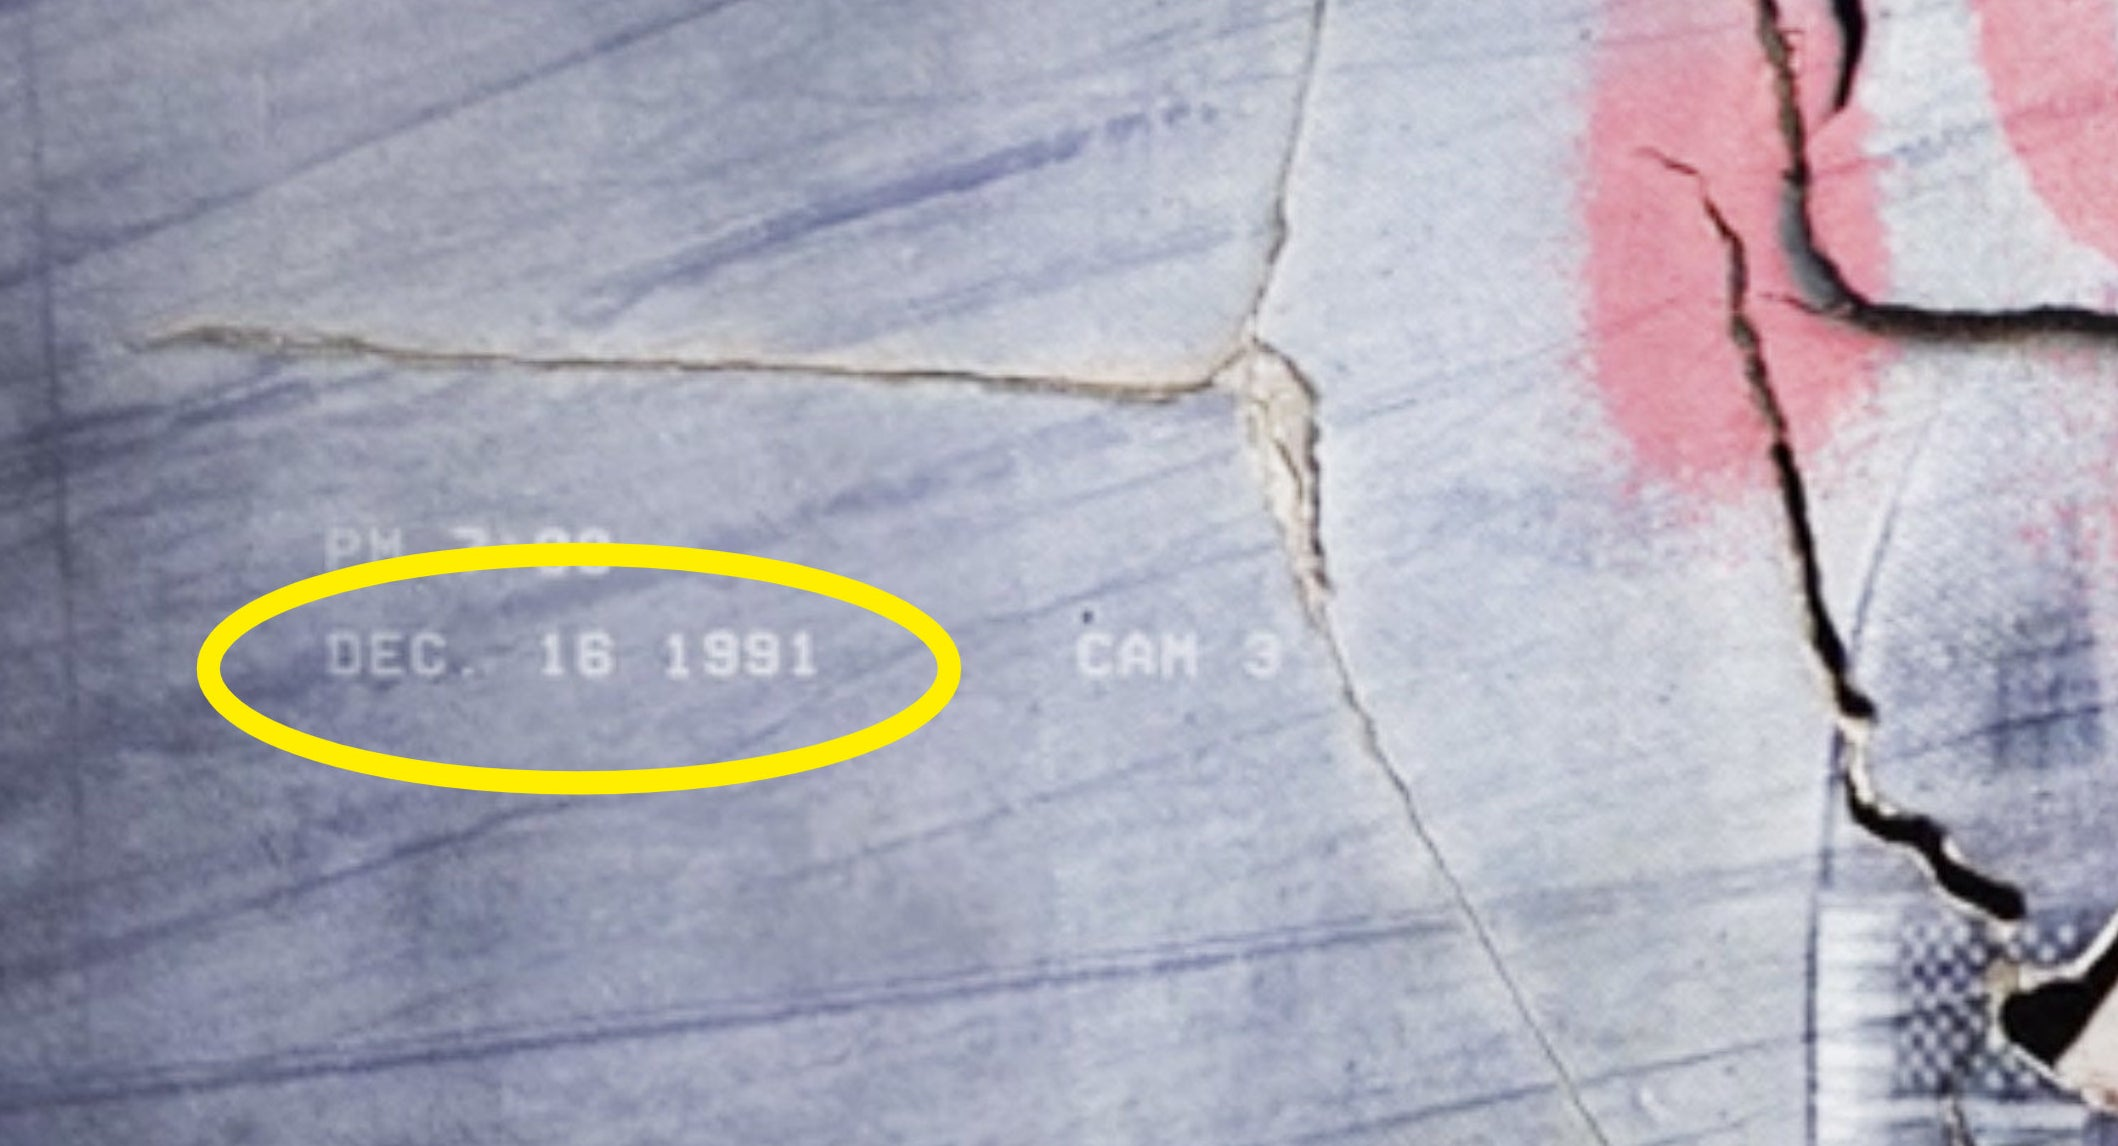 A yellow circle around the date Dec. 16, 1991